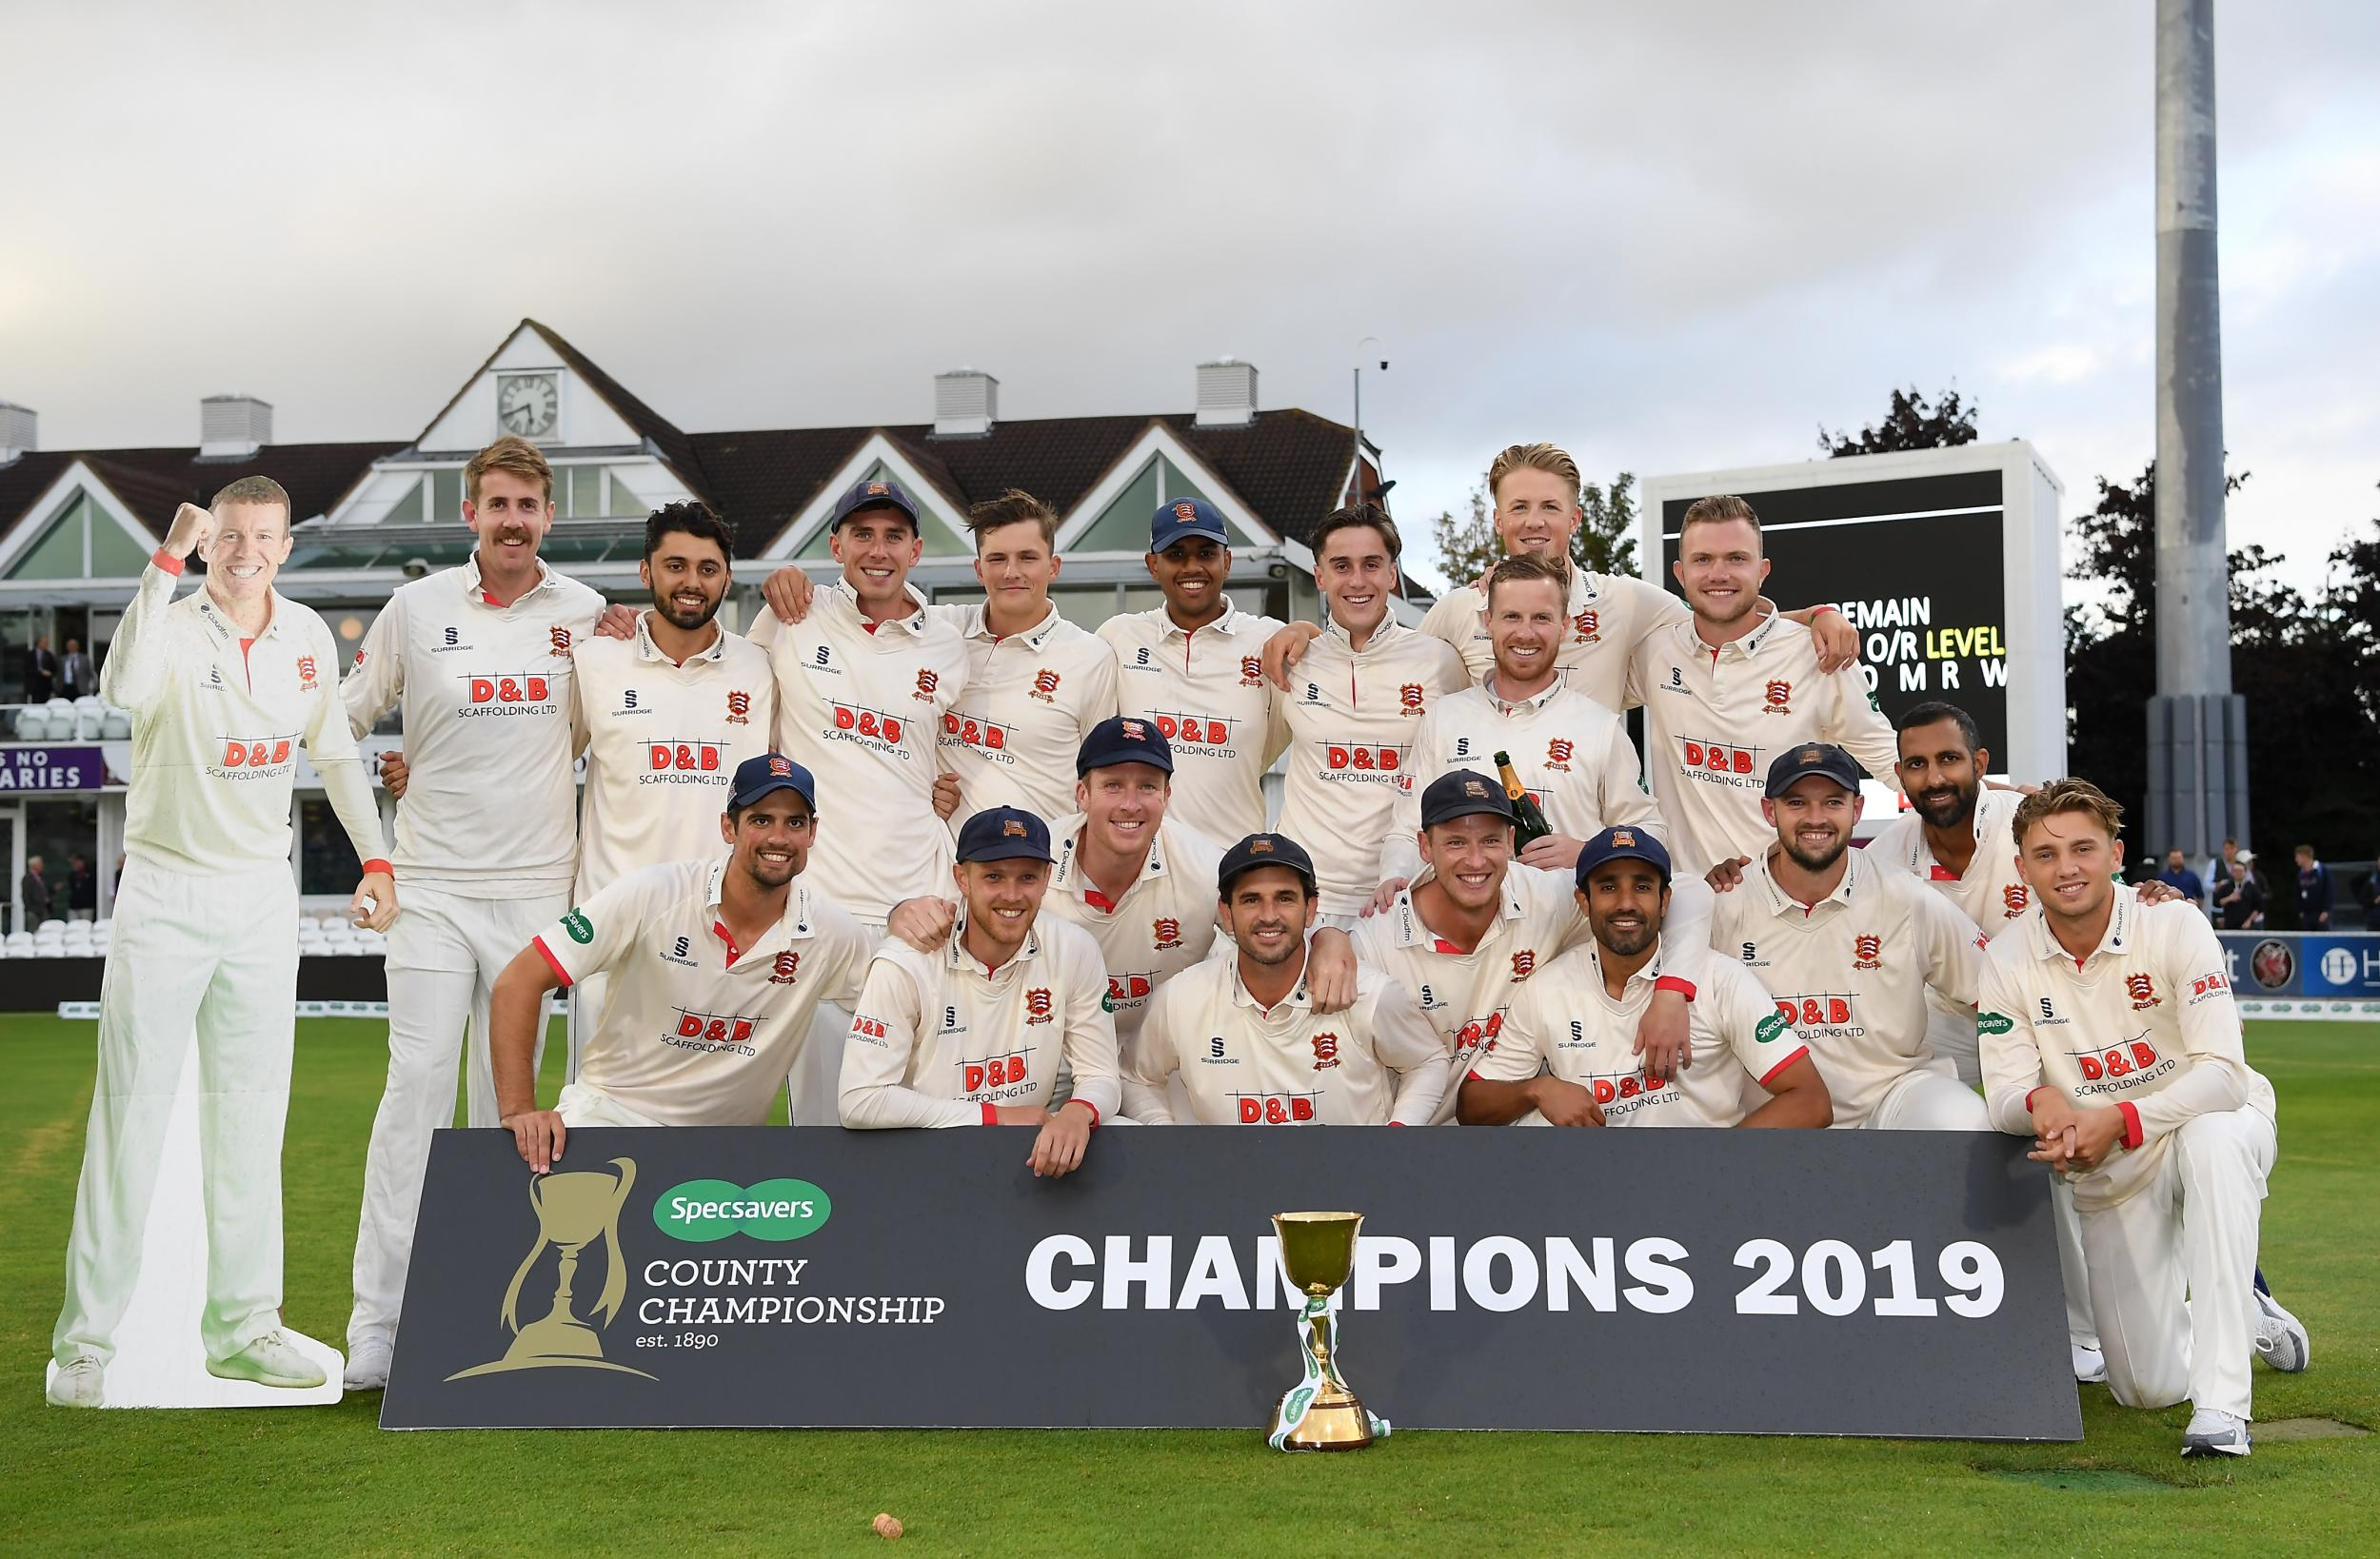 County Championship: Essex win 2019 title despite late drama at Somerset